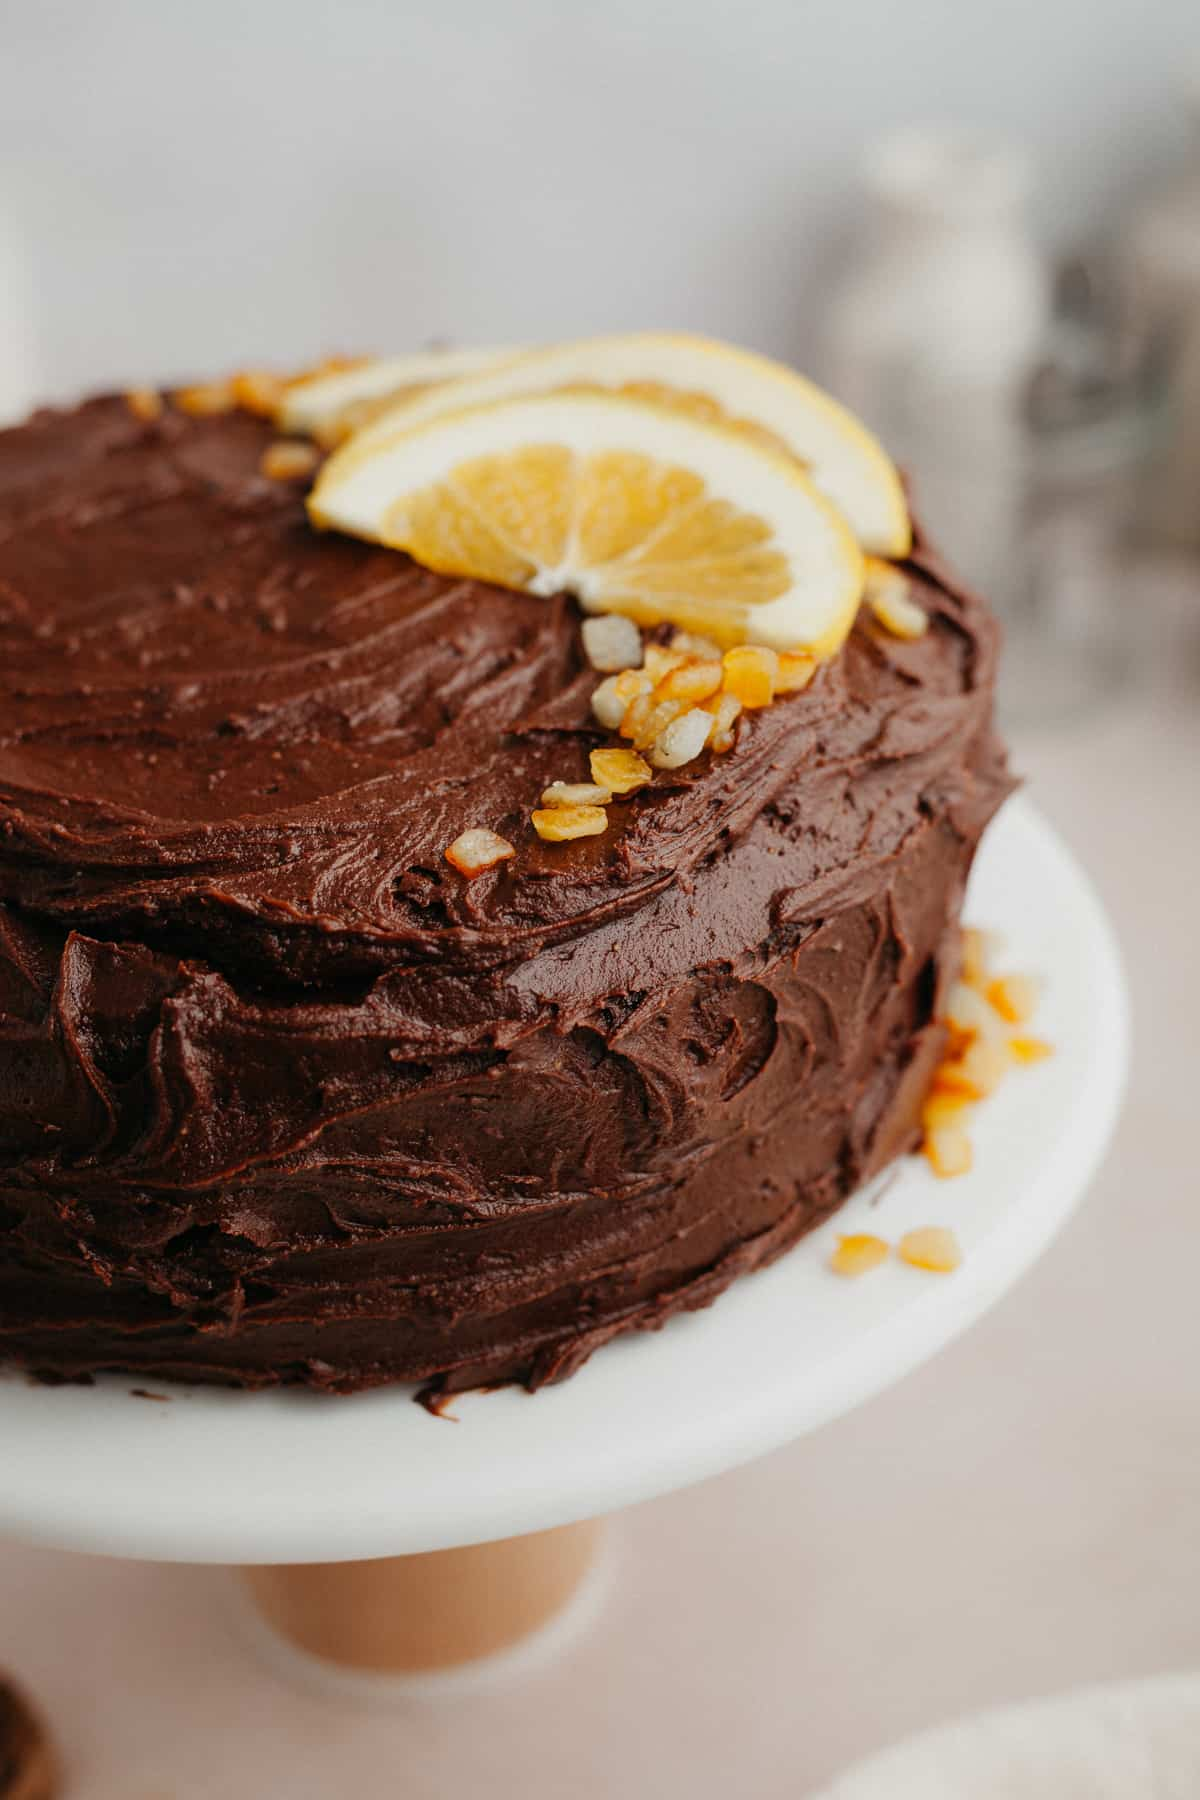 Side angle view of a chocolate orange cake, frosted with chocolate frosting and the top has sliced oranges